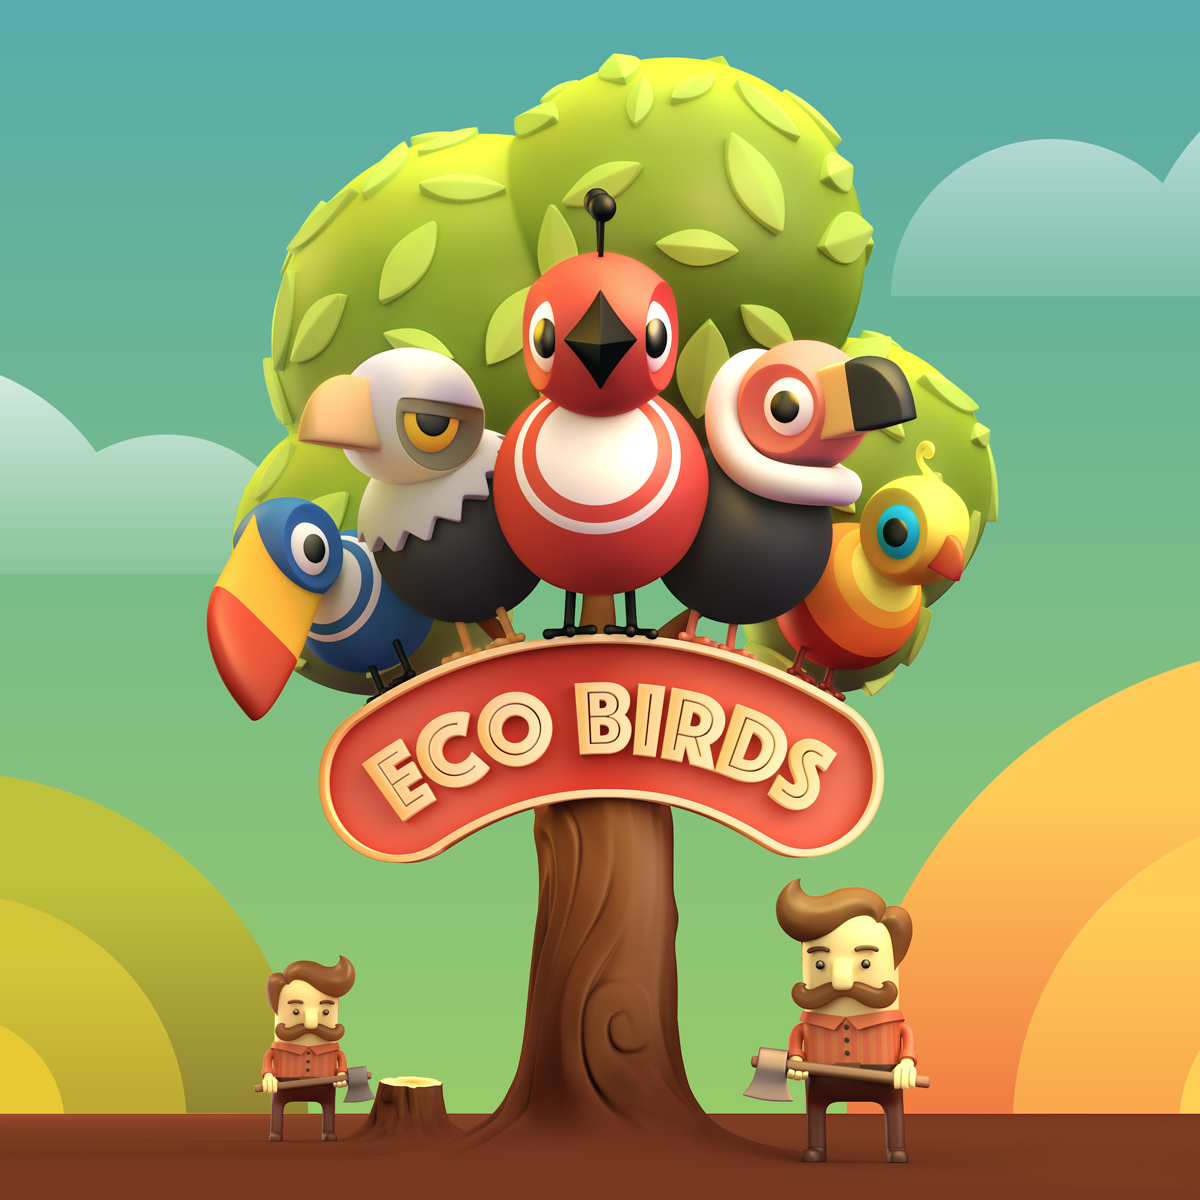 Eco Birds (mobile game)